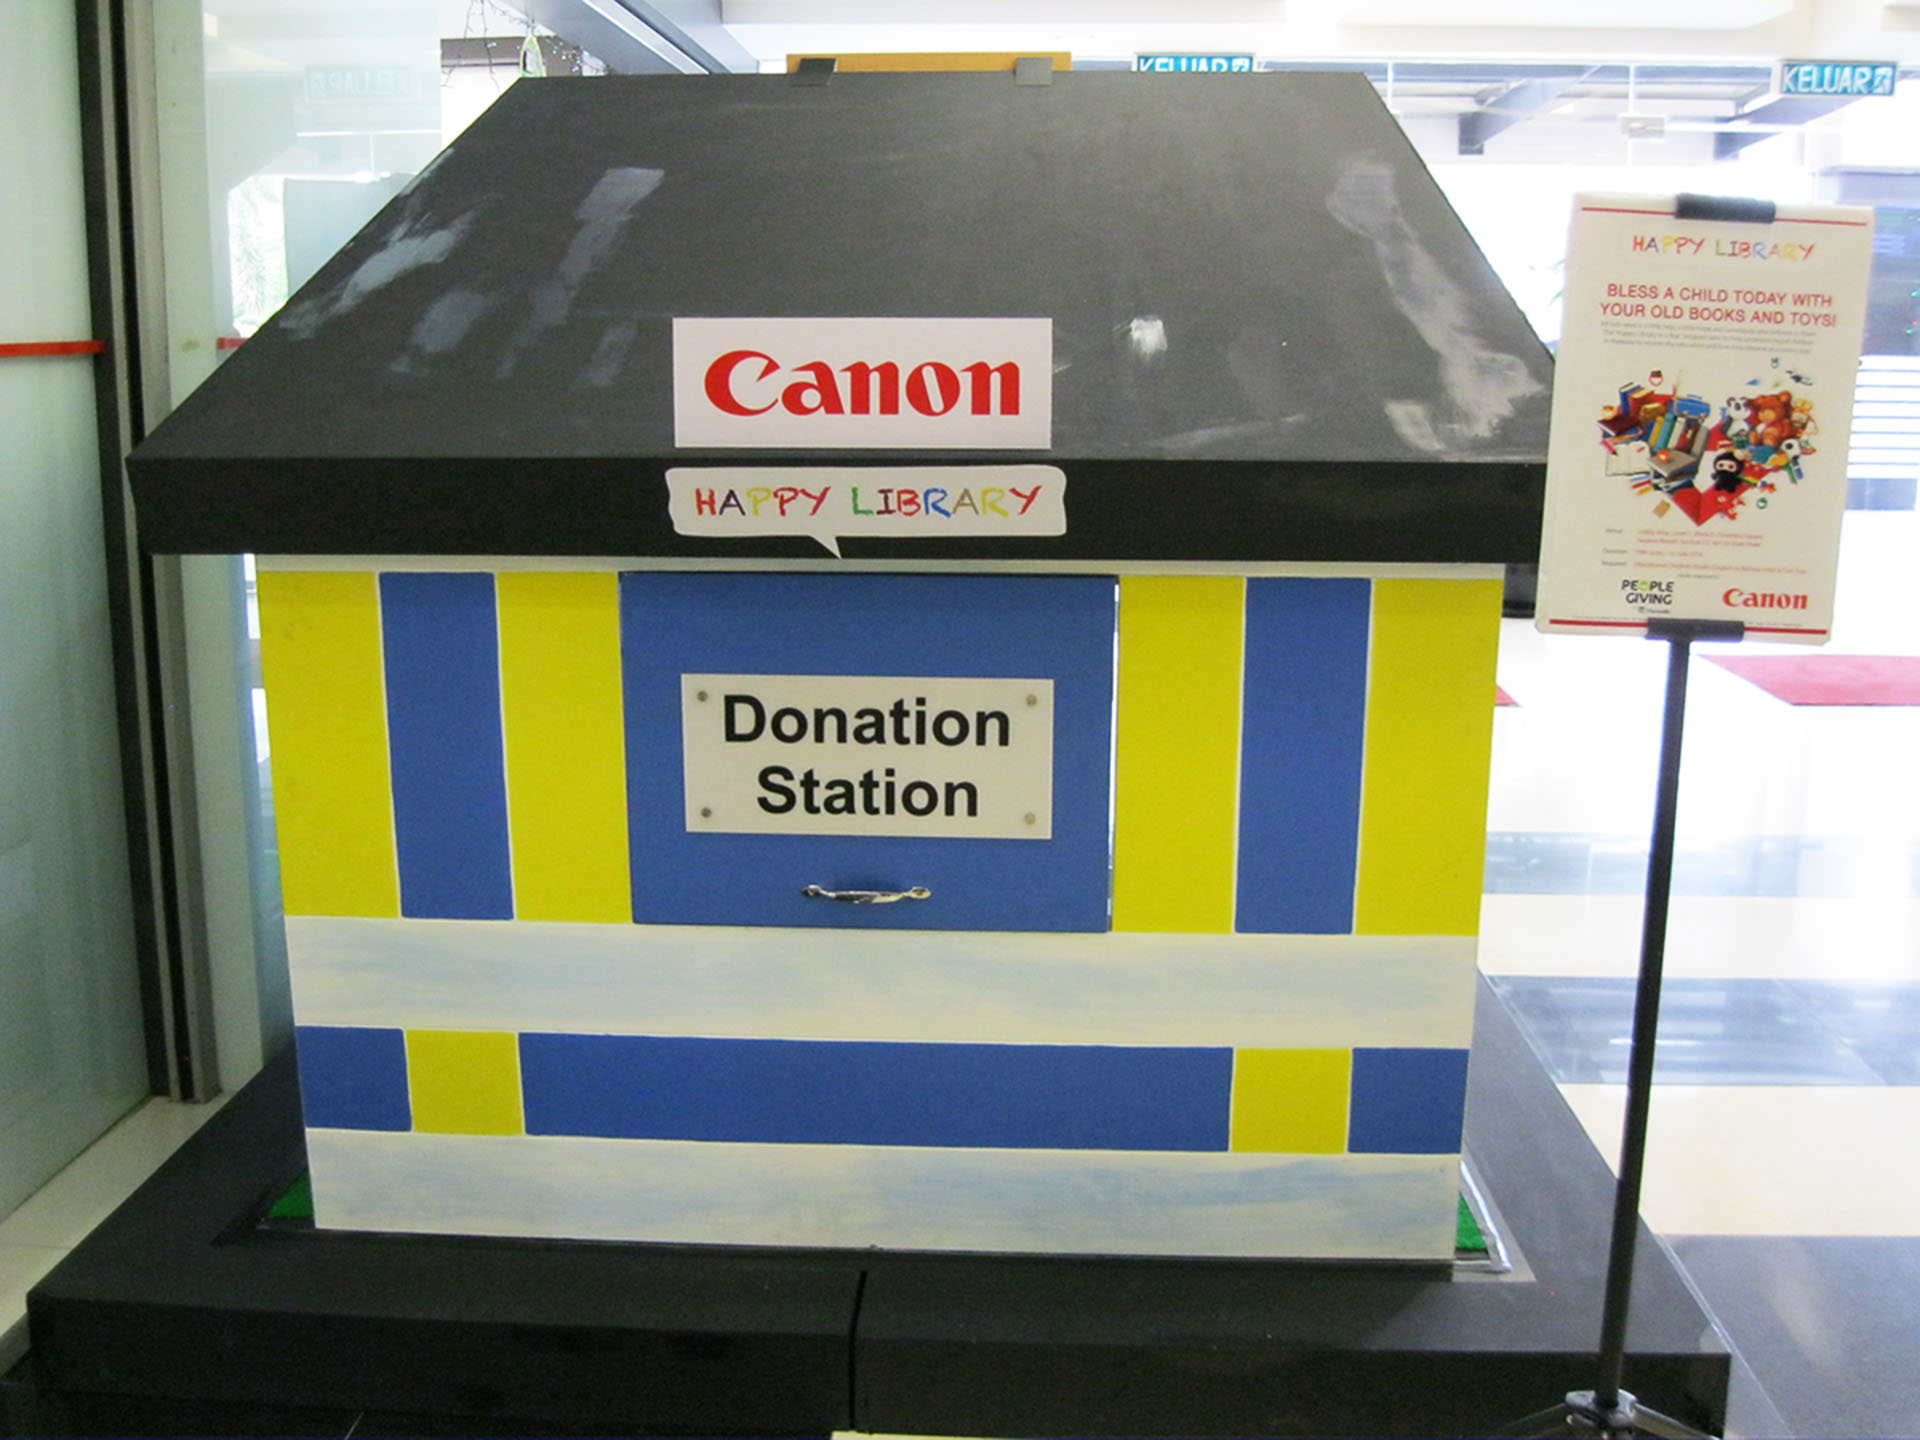 corporate social responsibility canon personal happy library book and toy donation campaign